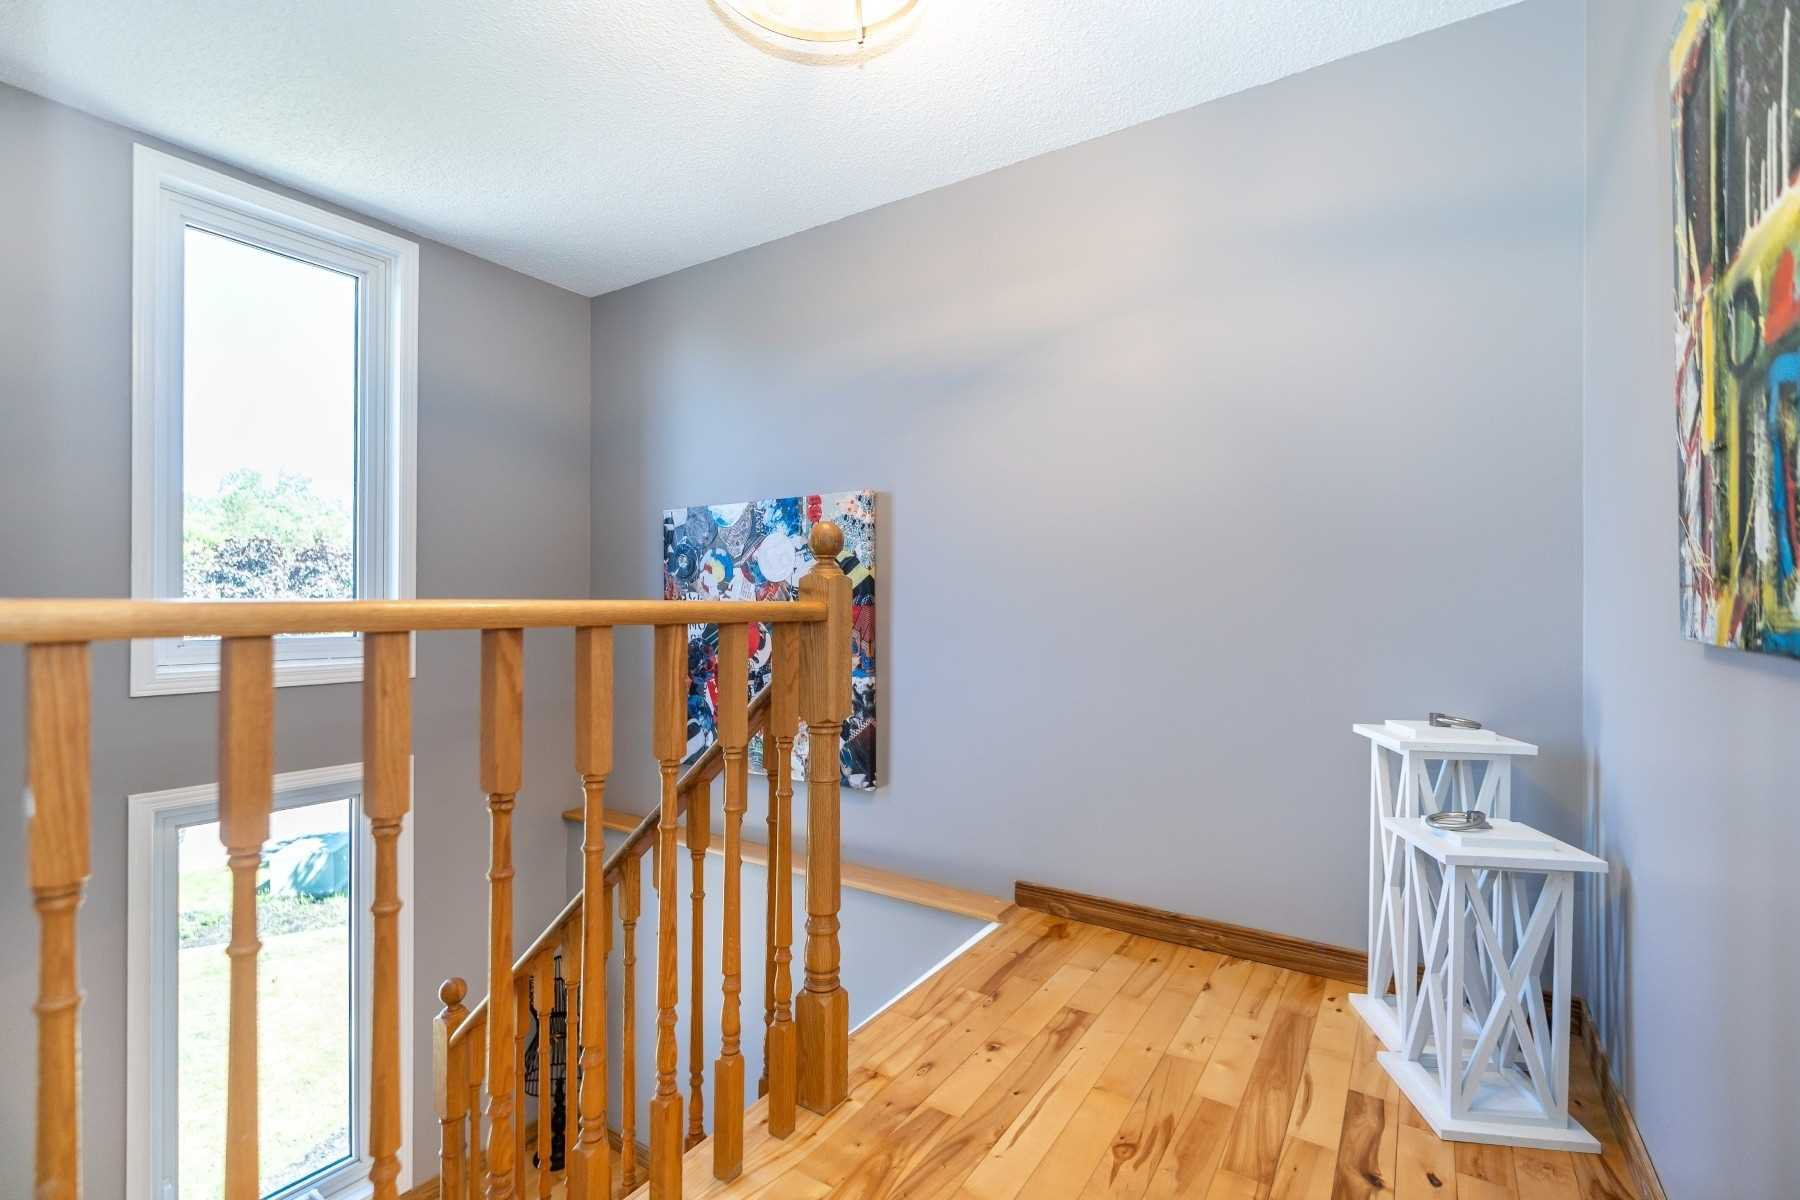 Photo 19: Photos: 1153 Snowberry Court in Oshawa: Pinecrest House (2-Storey) for sale : MLS®# E4794796